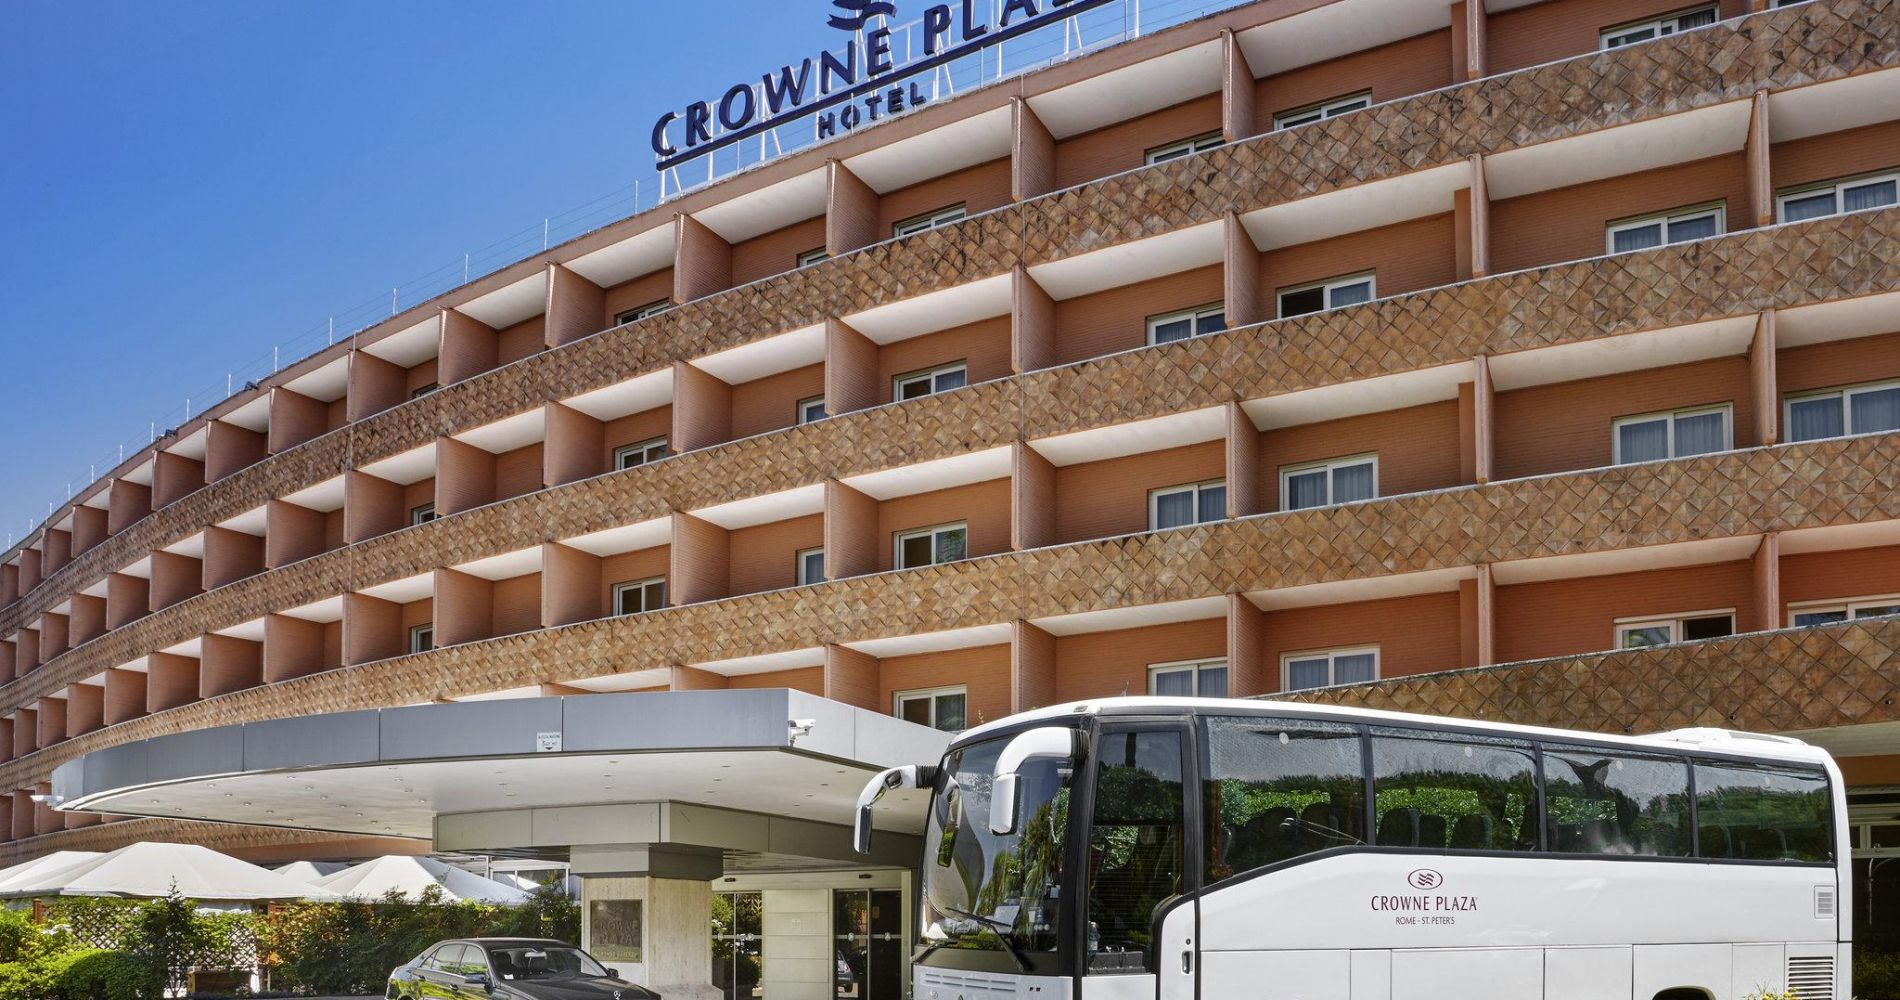 Crowne Plaza St Peters Hotel Rome